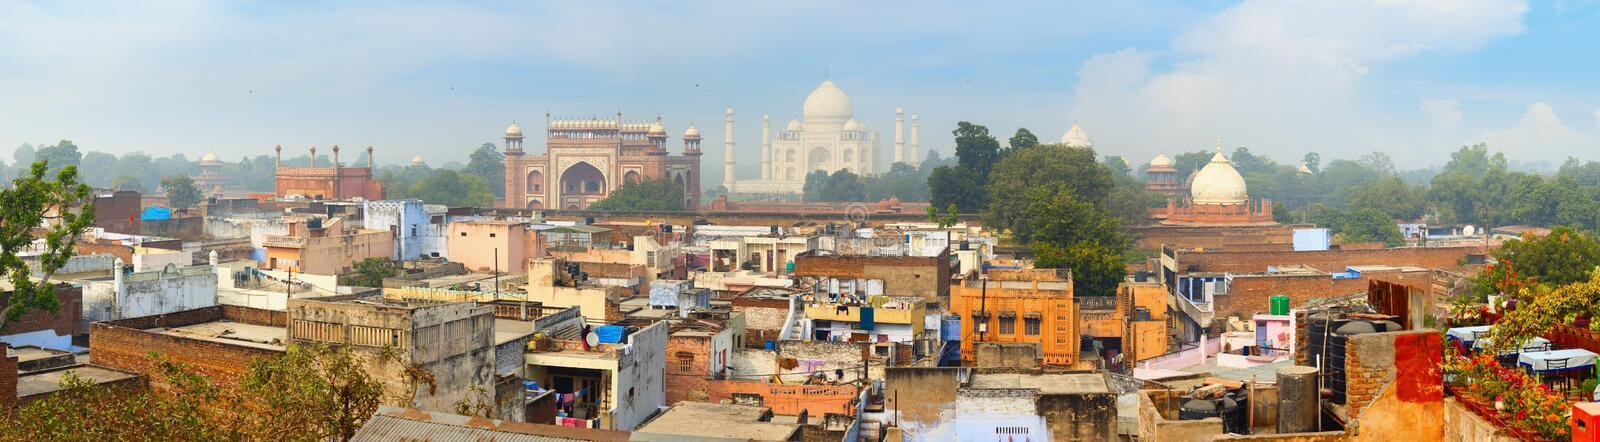 Panorama of the ancient Agra city. The famous mausoleum Taj Mahal in the background stock photo